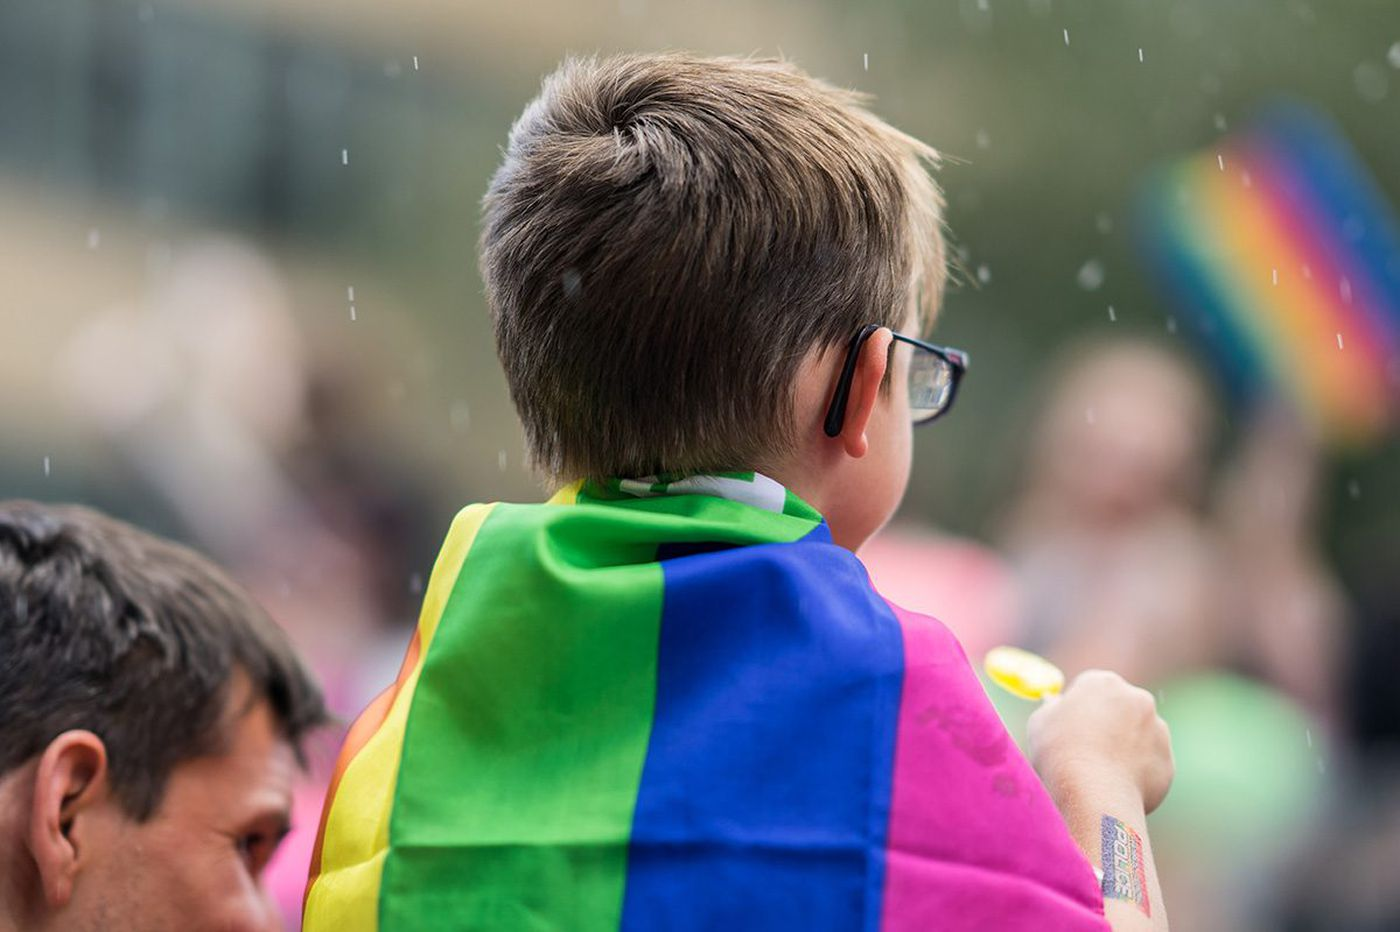 Political tussle over gender surgery for trans kids may delay health care for low-income kids in Pa.